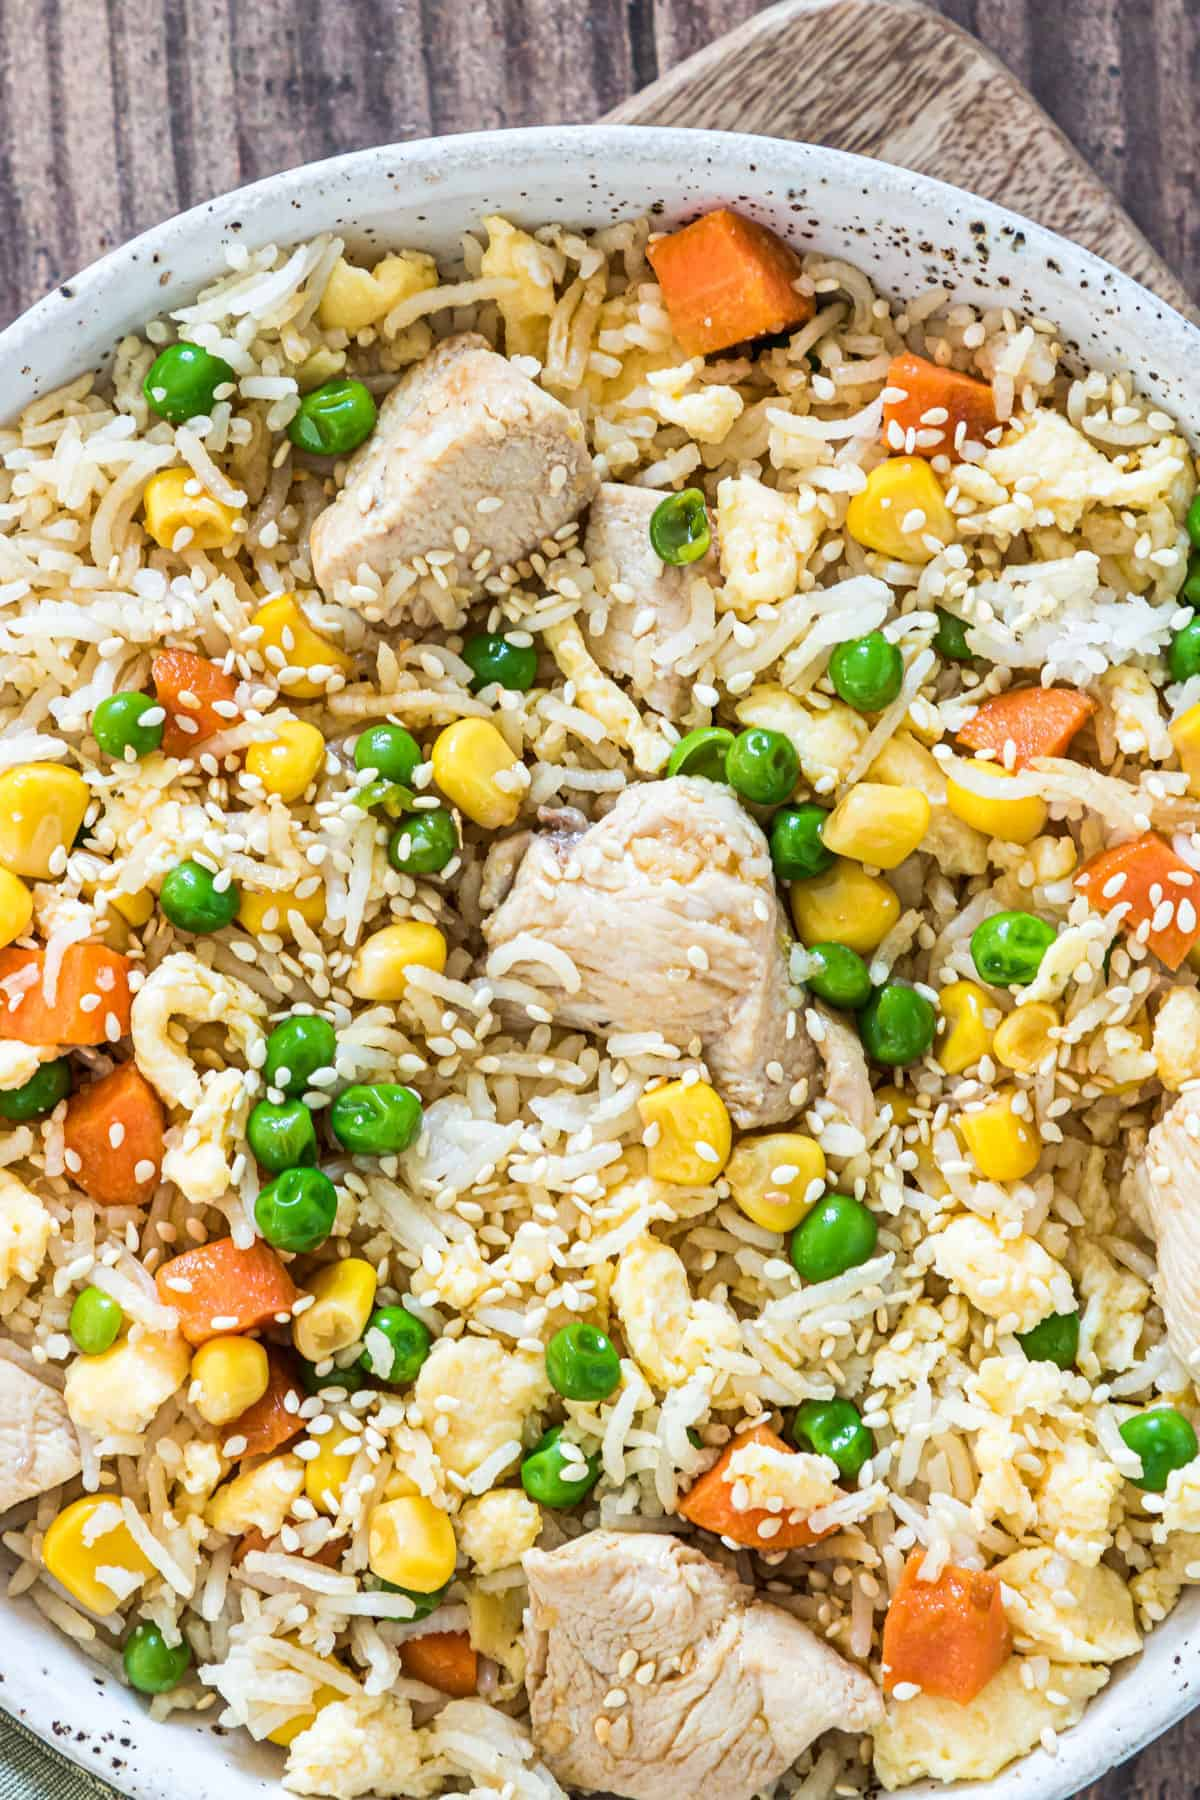 close up view of the completed instant pot chicken fried rice recipe